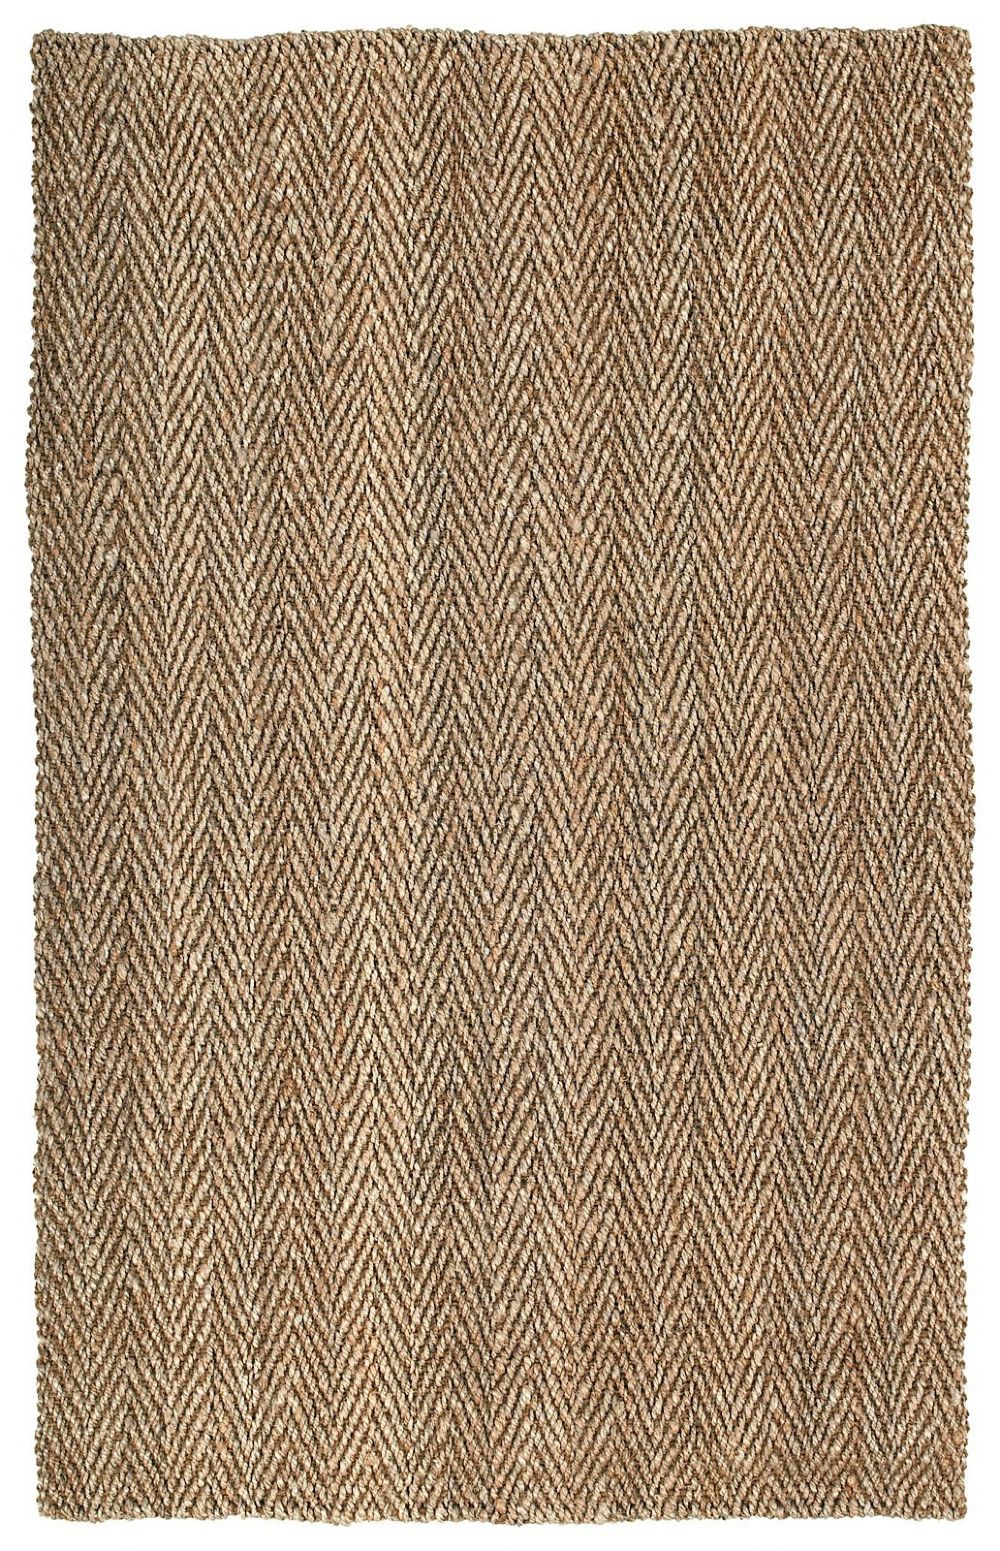 kaleen essential natural fiber area rug collection